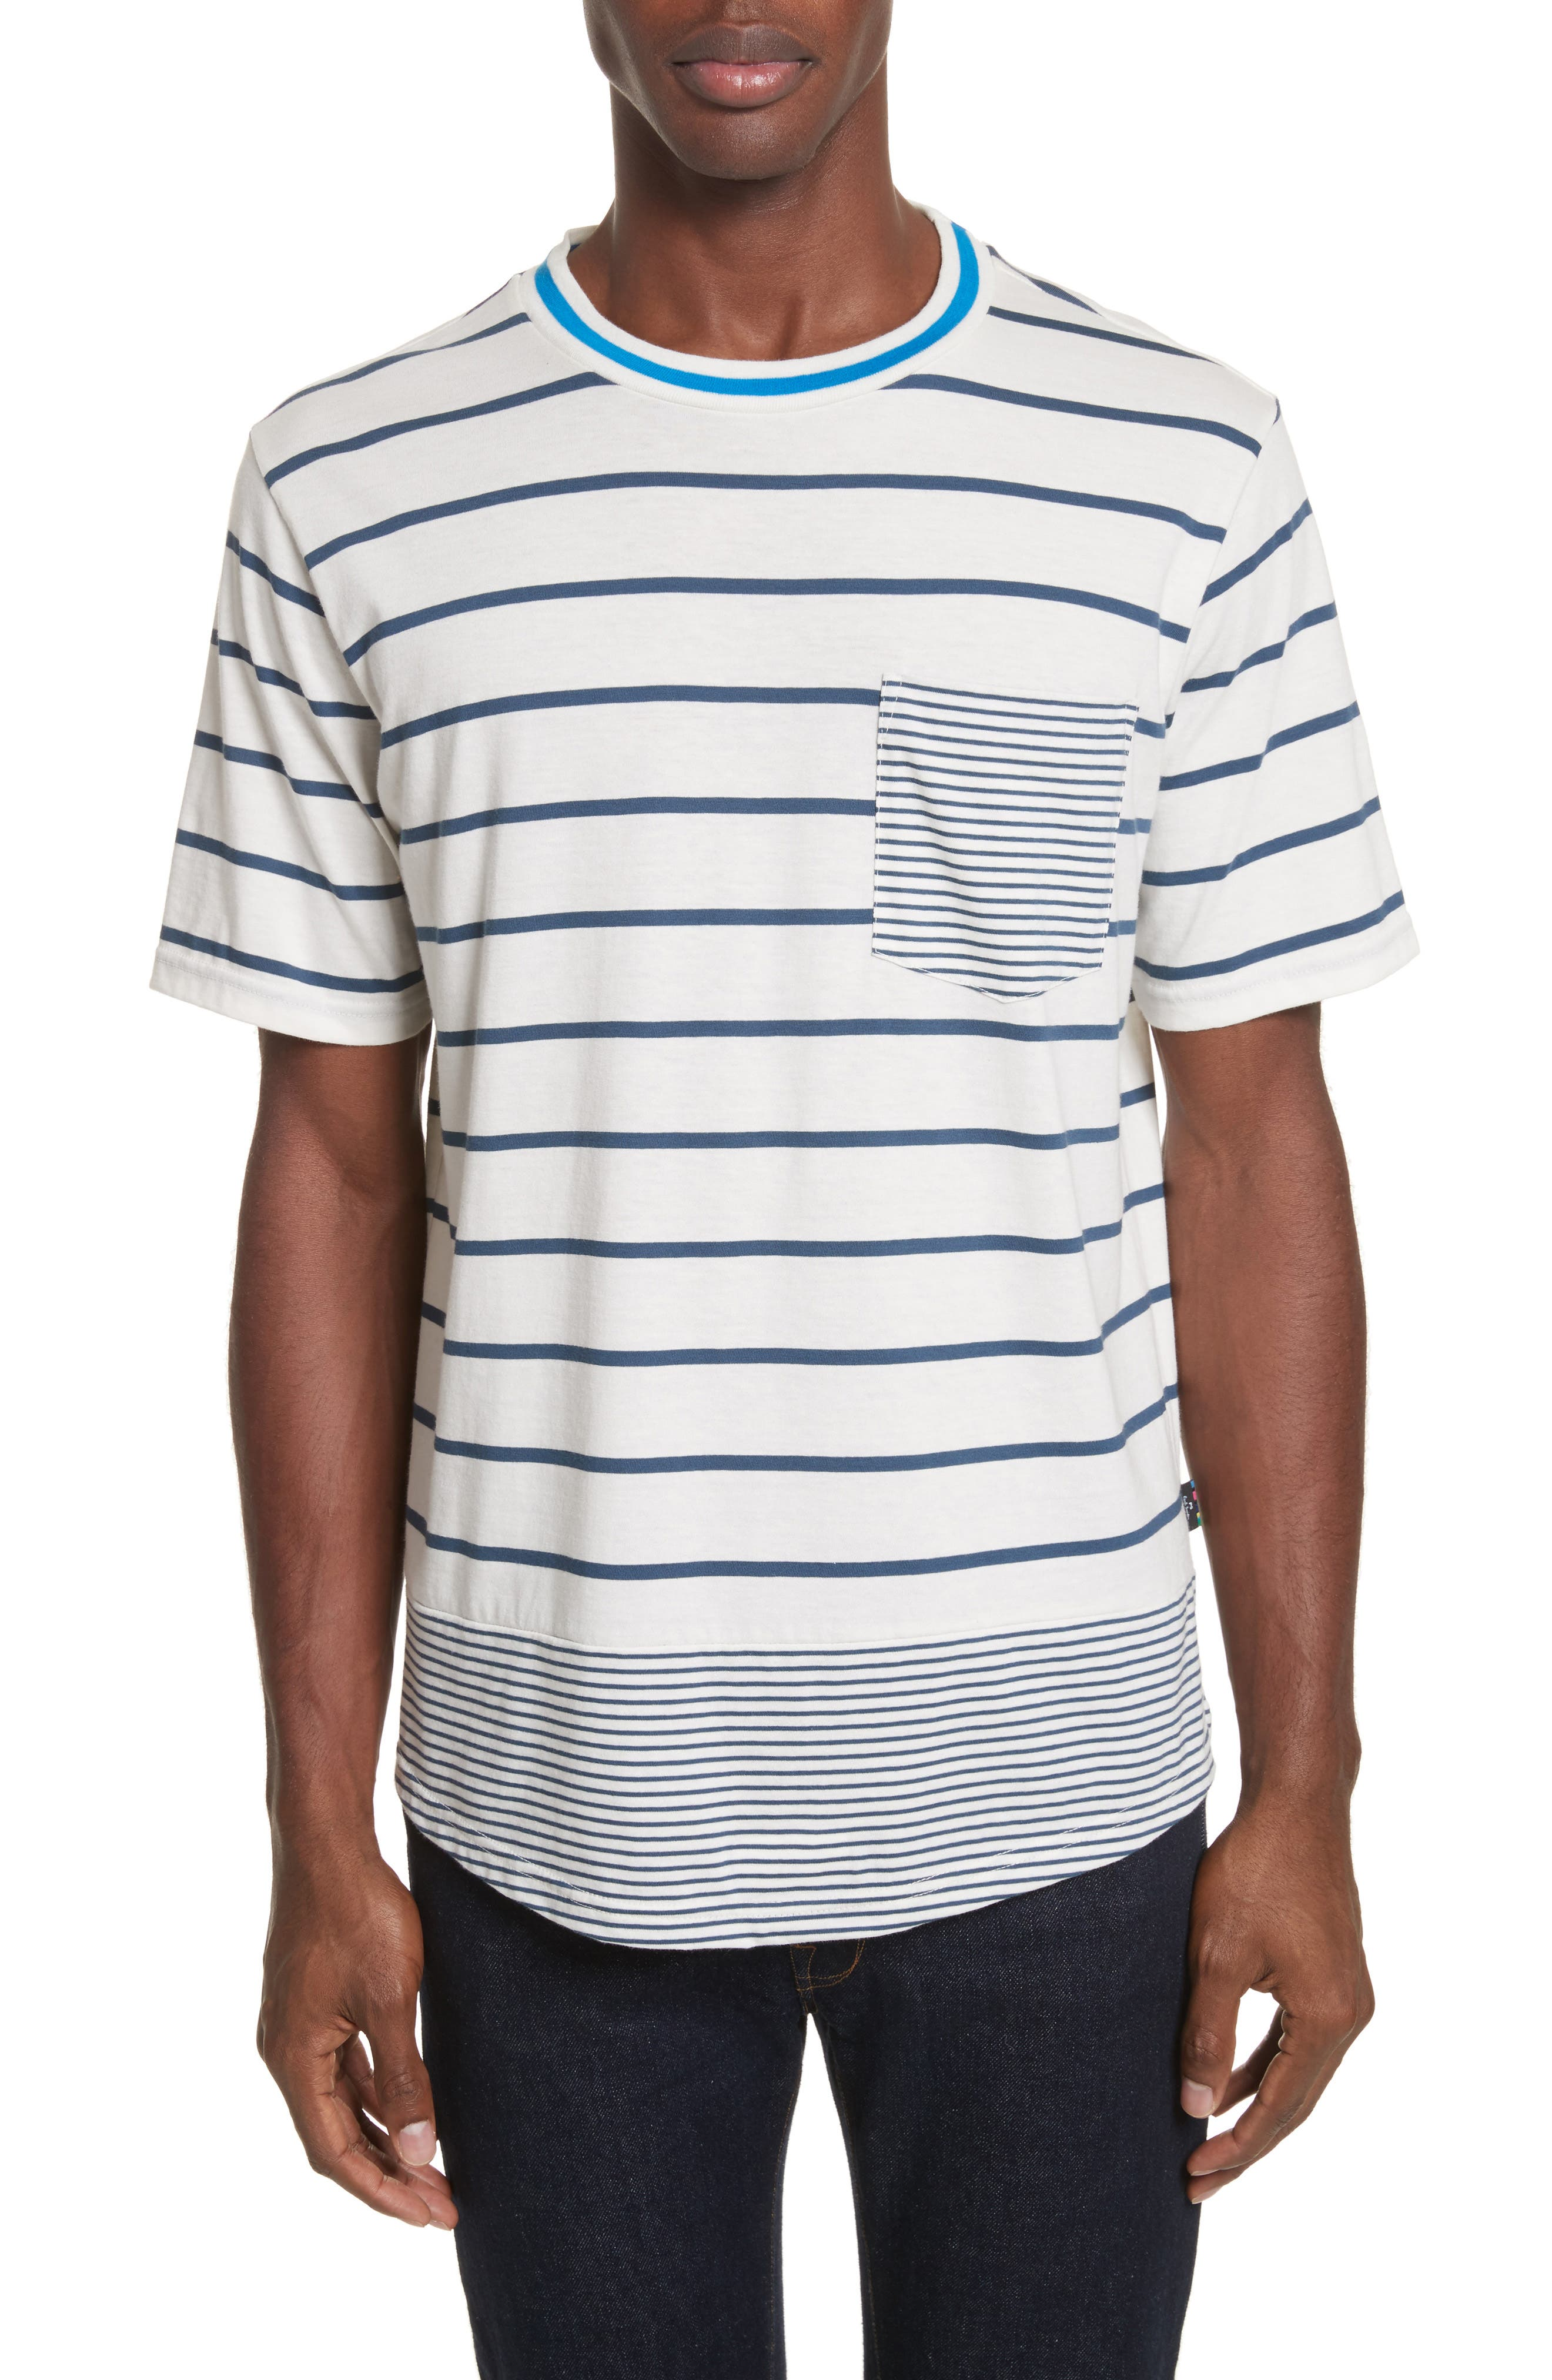 66c30c3d98 PS BY PAUL SMITH MIXED-STRIPED ORGANIC COTTON T-SHIRT, NAVY   ModeSens